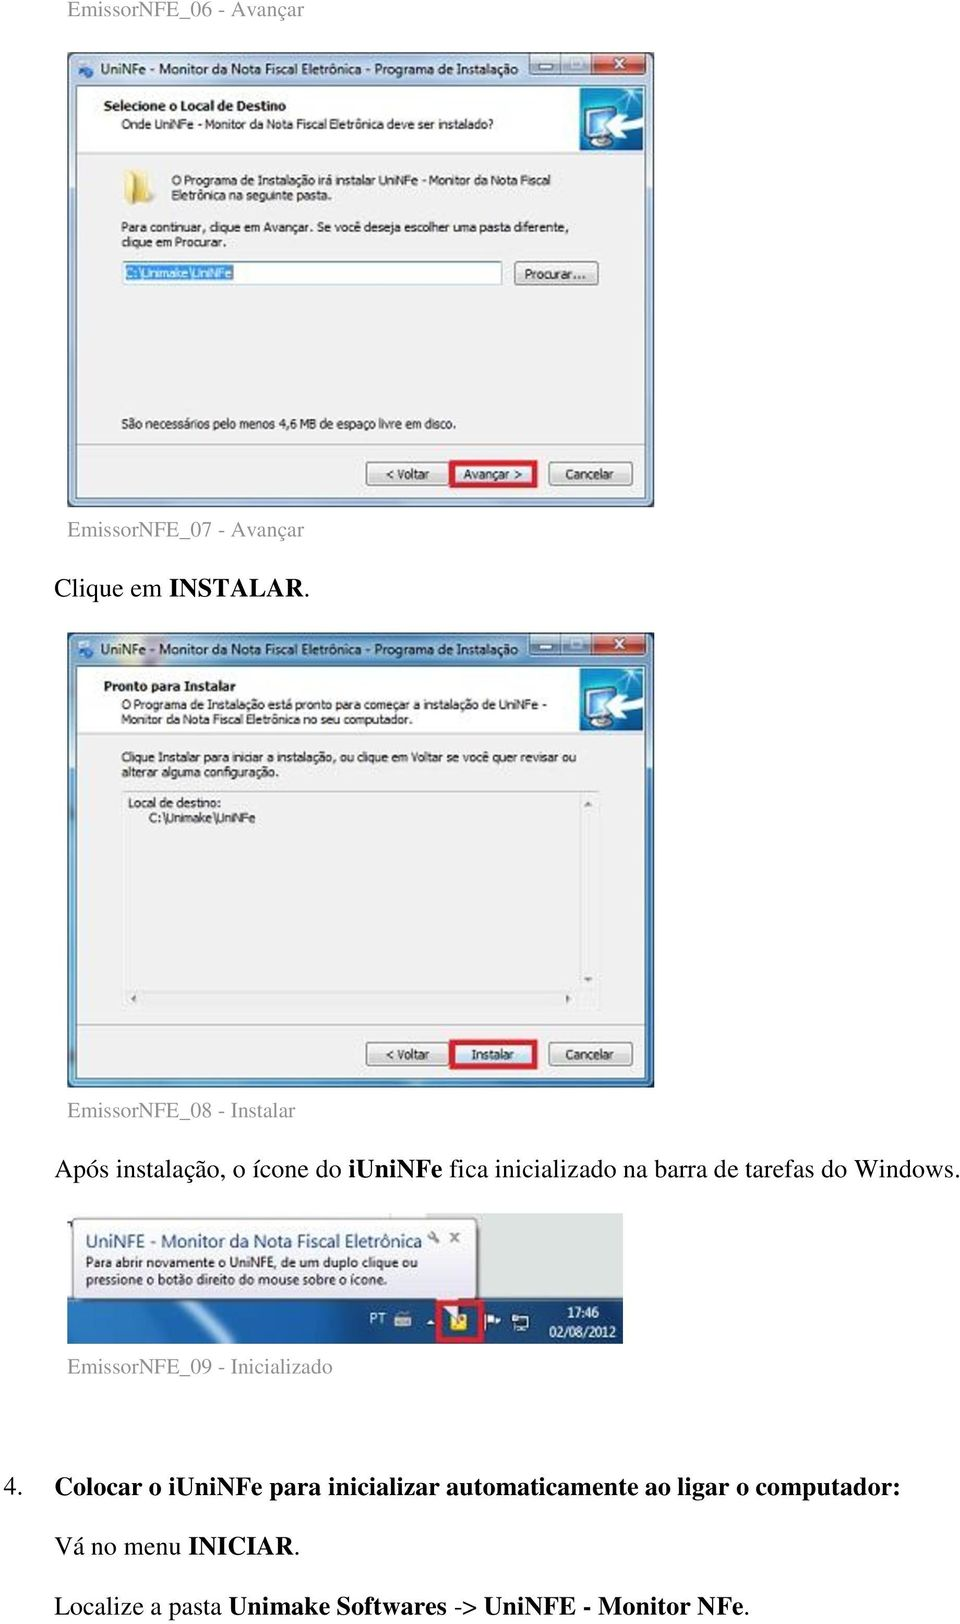 tarefas do Windows. EmissorNFE_09 - Inicializado 4.